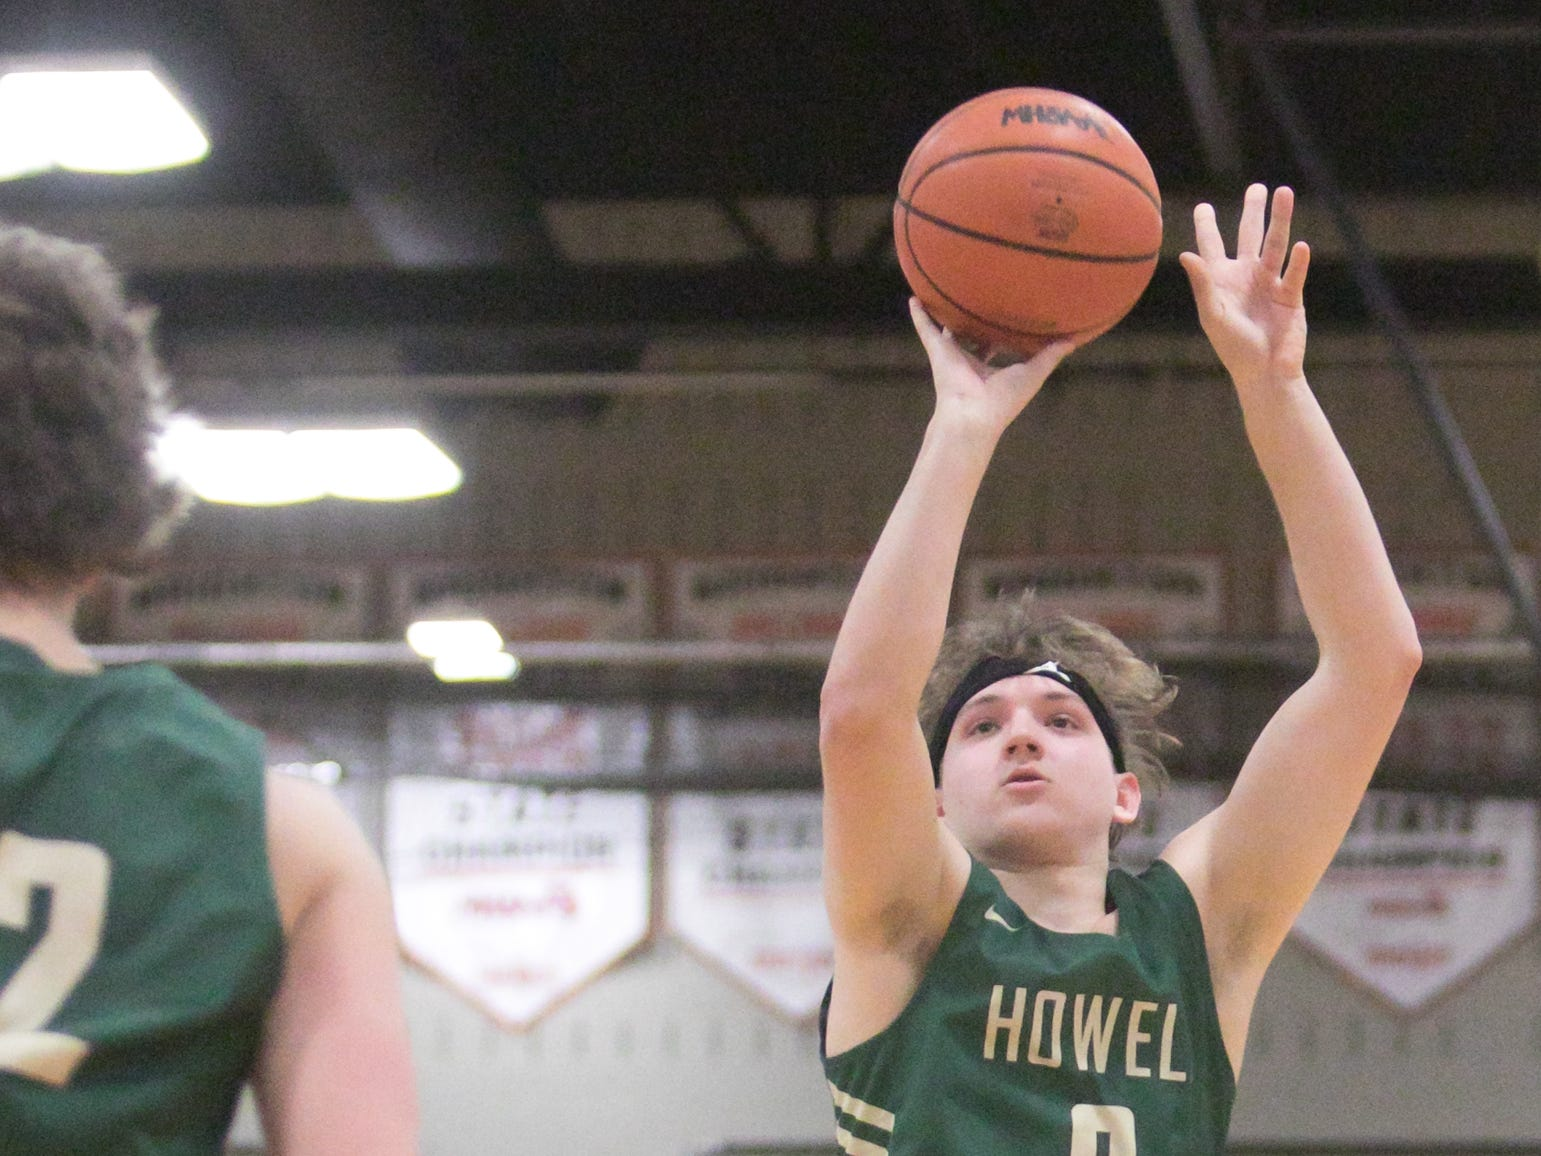 Josh Palo of Howell shoots in the third quarter of the game at Brighton Tuesday, Jan. 8, 2019.